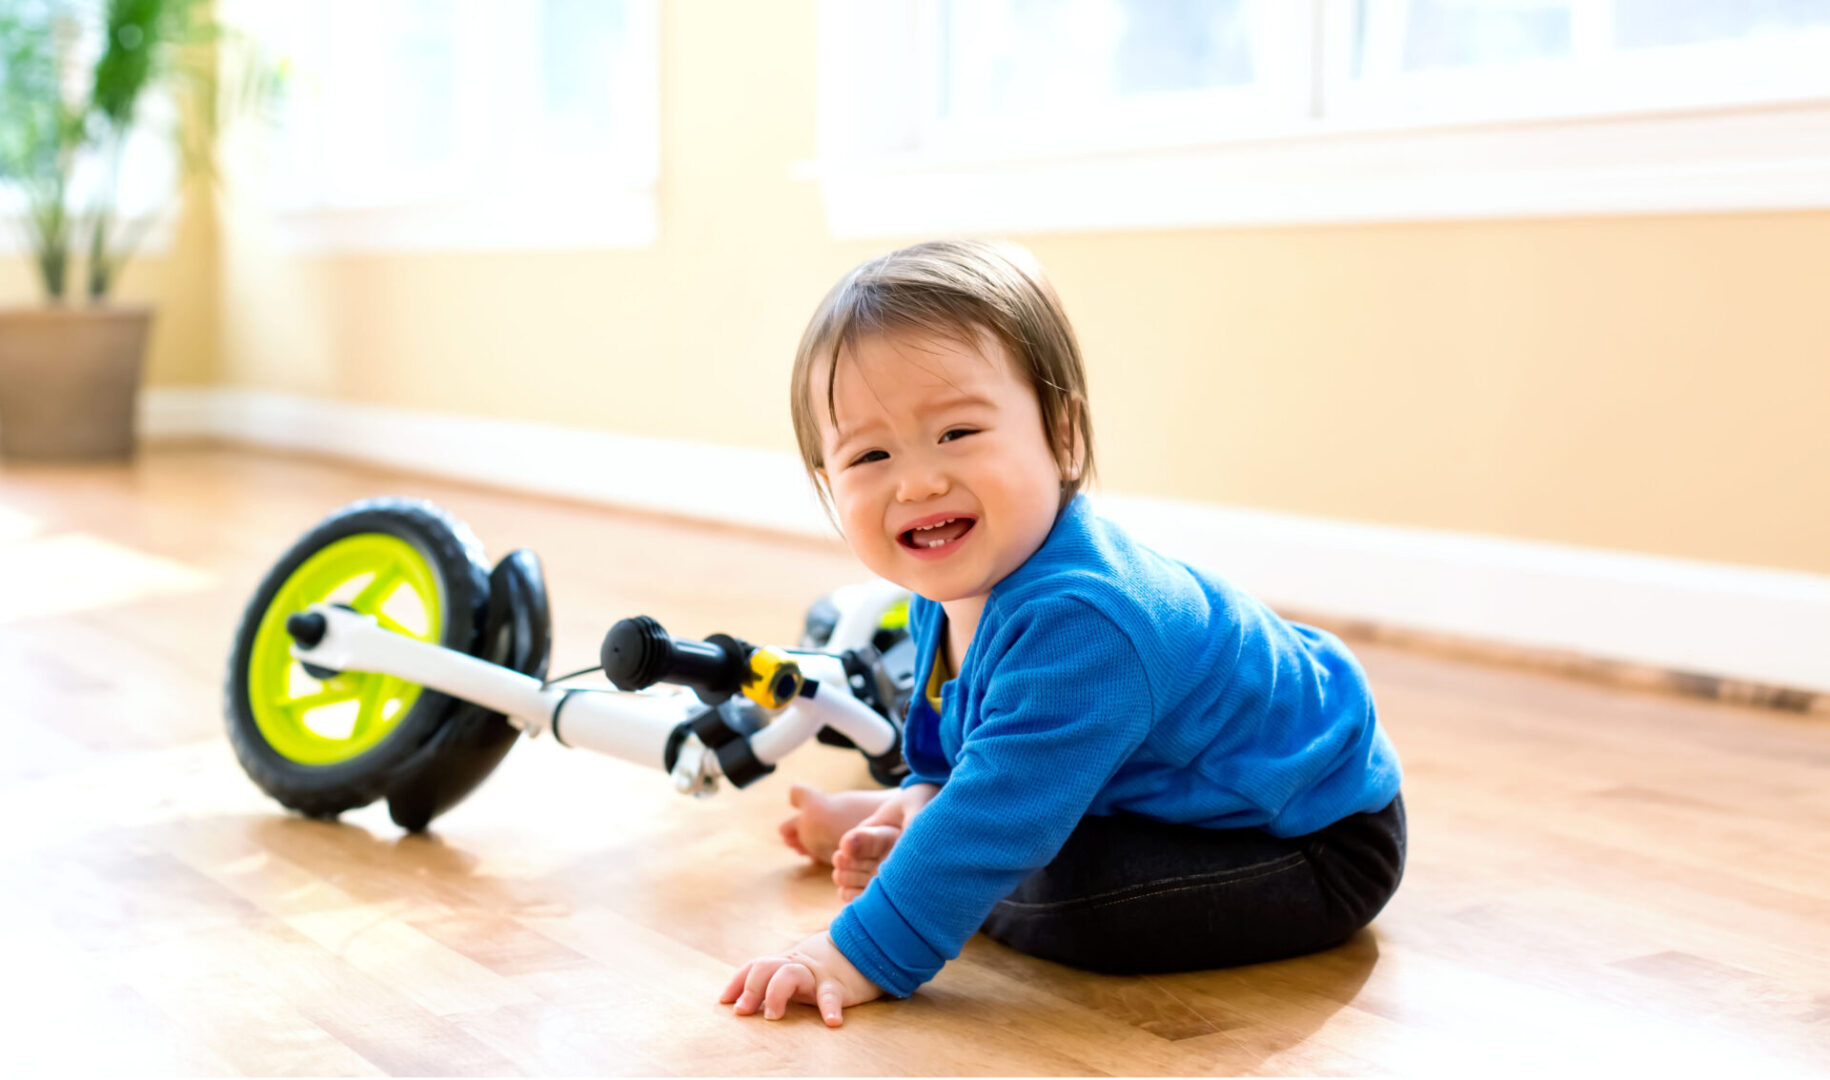 Baby on the floor with bike